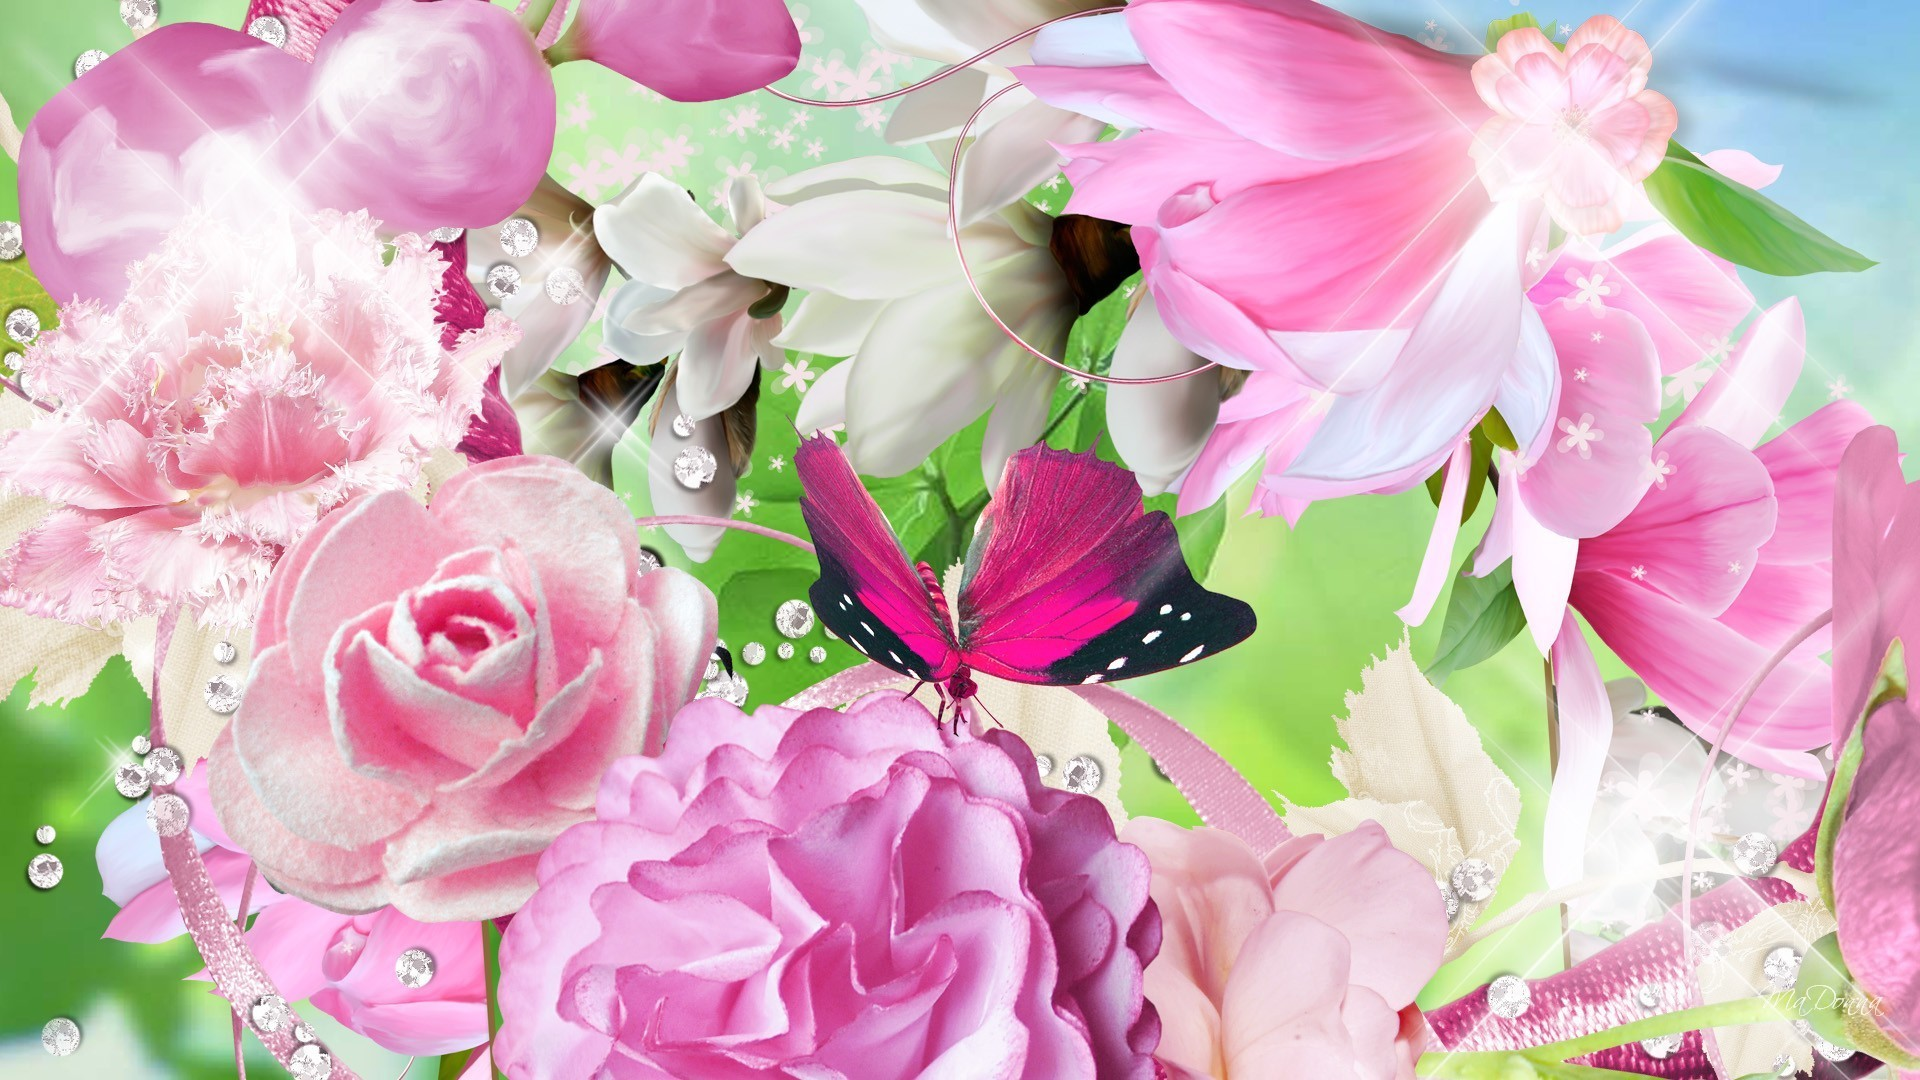 January 6, 2017 – Summer Bouquet Flowers Butterfly Roses Pink Peony Fleurs  Papillon Spring Floral